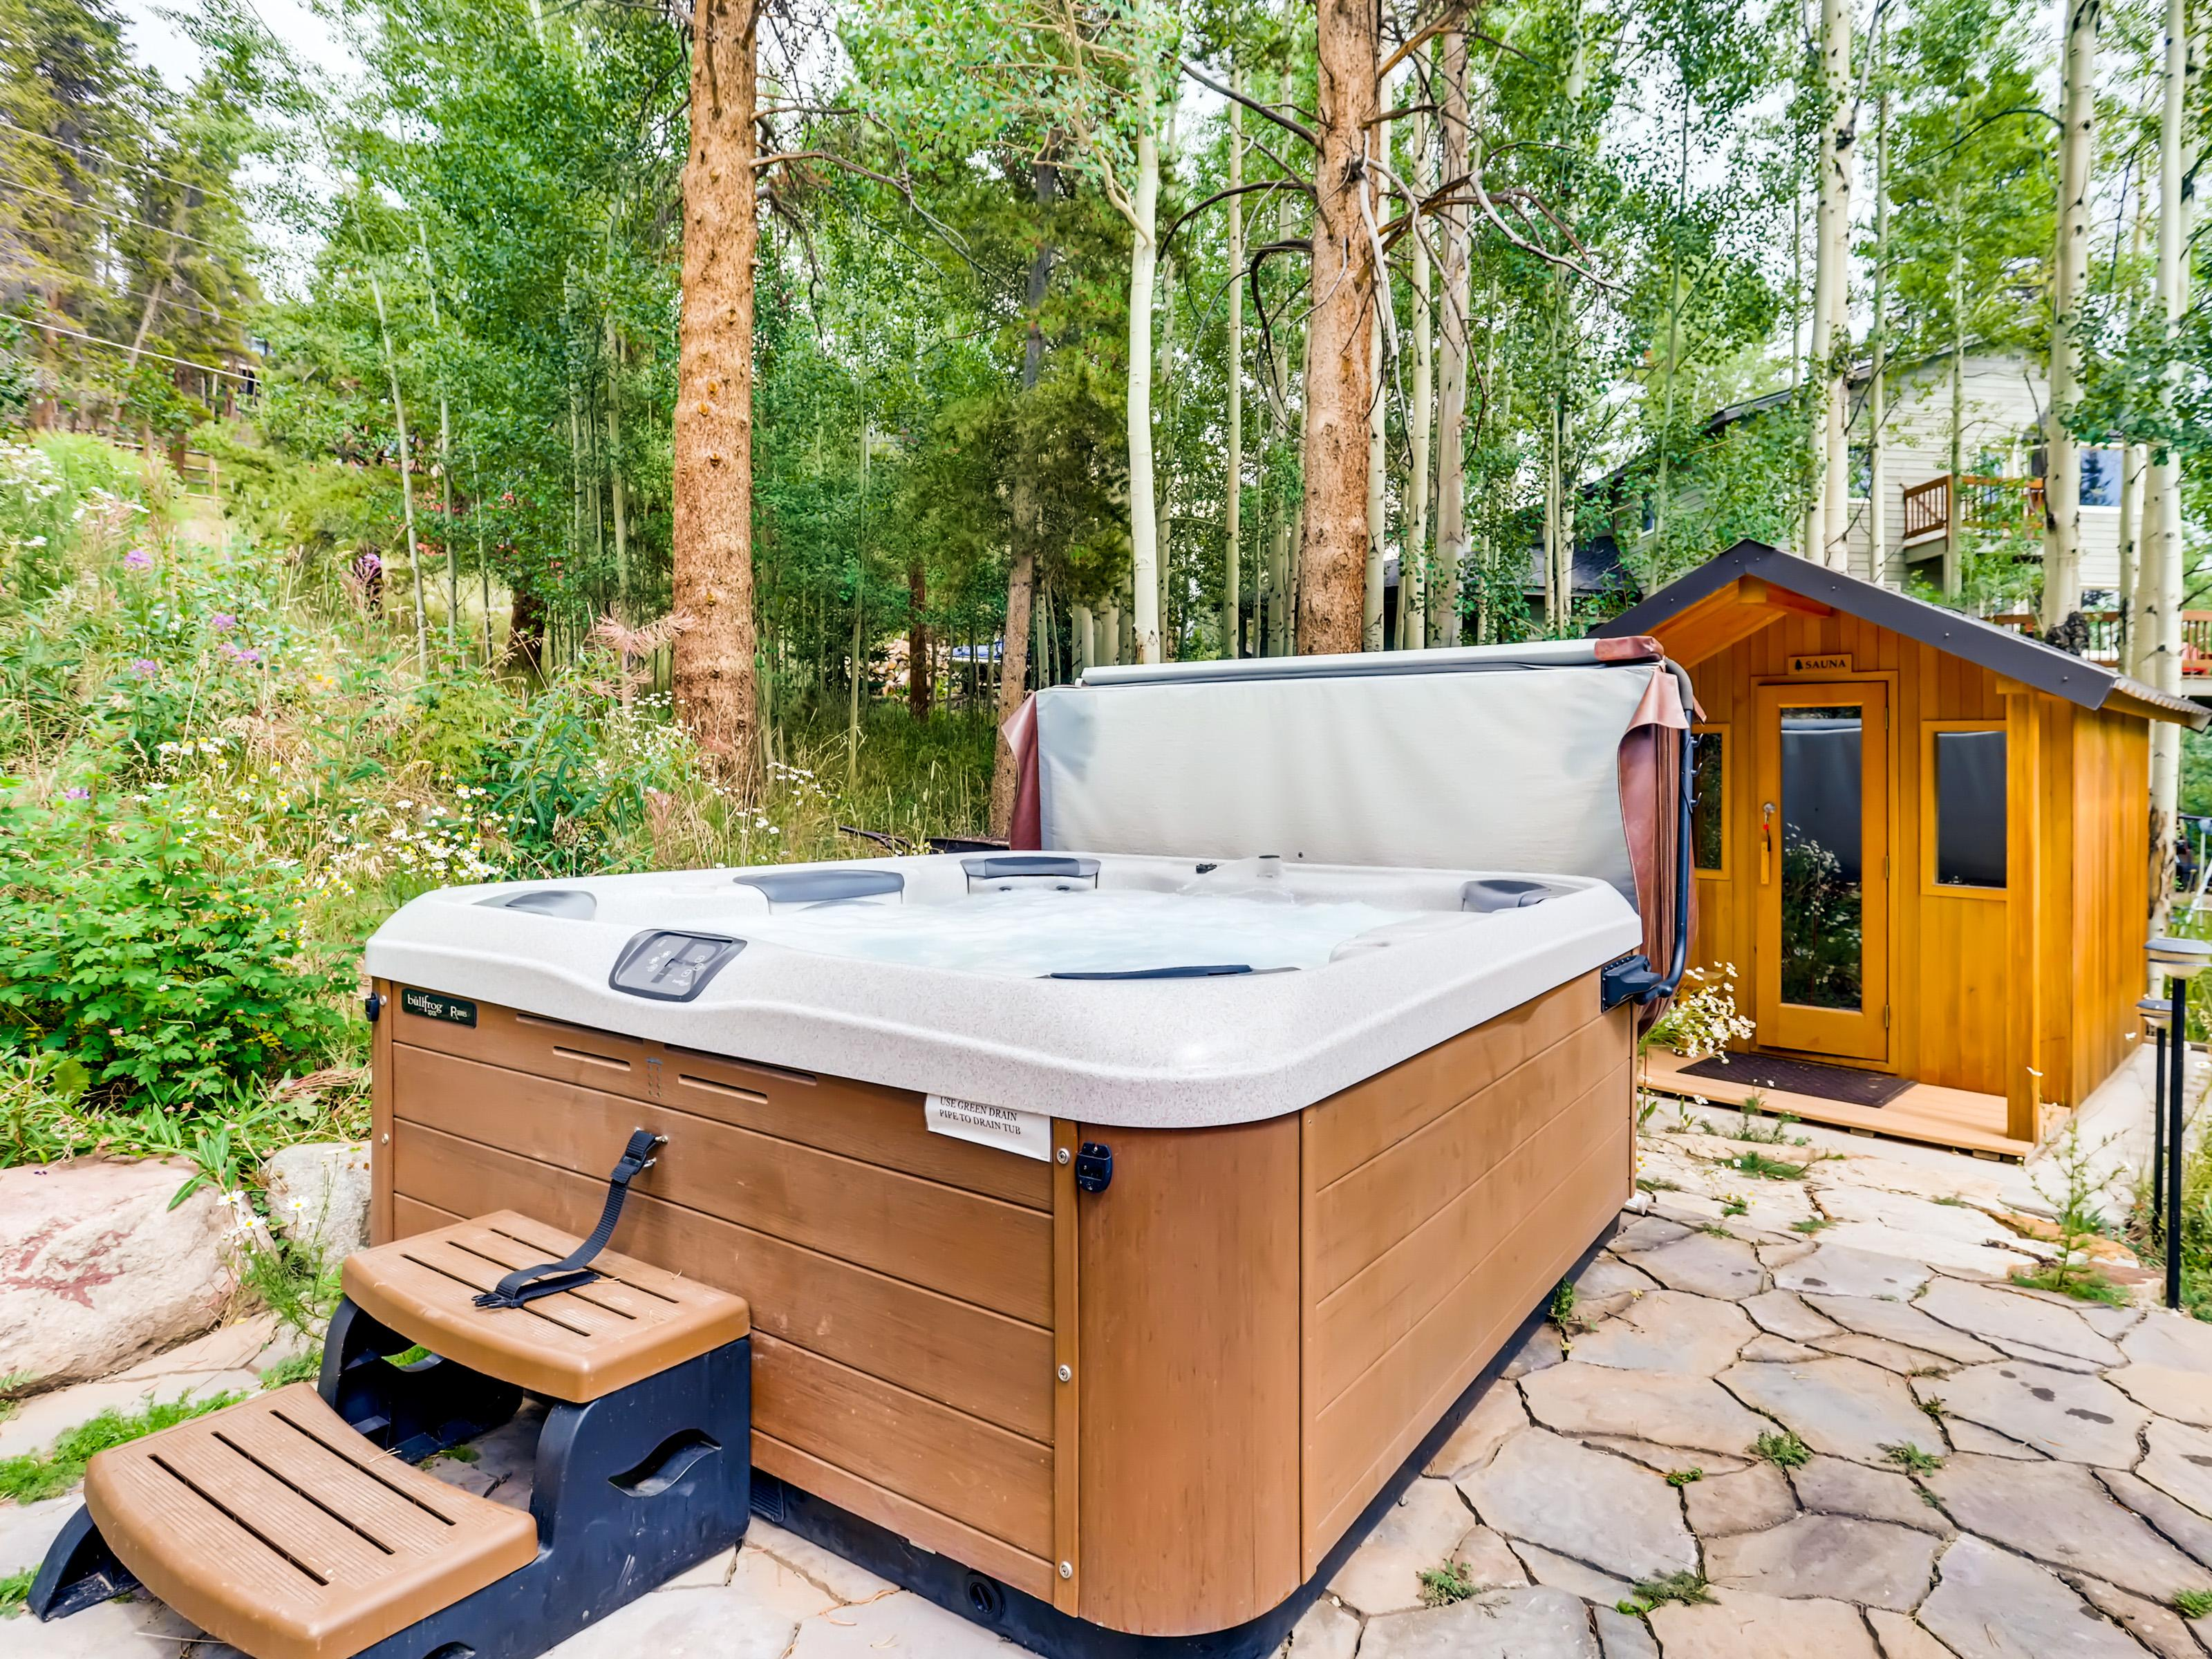 Relax and restore beneath the stars in your private backyard hot tub.